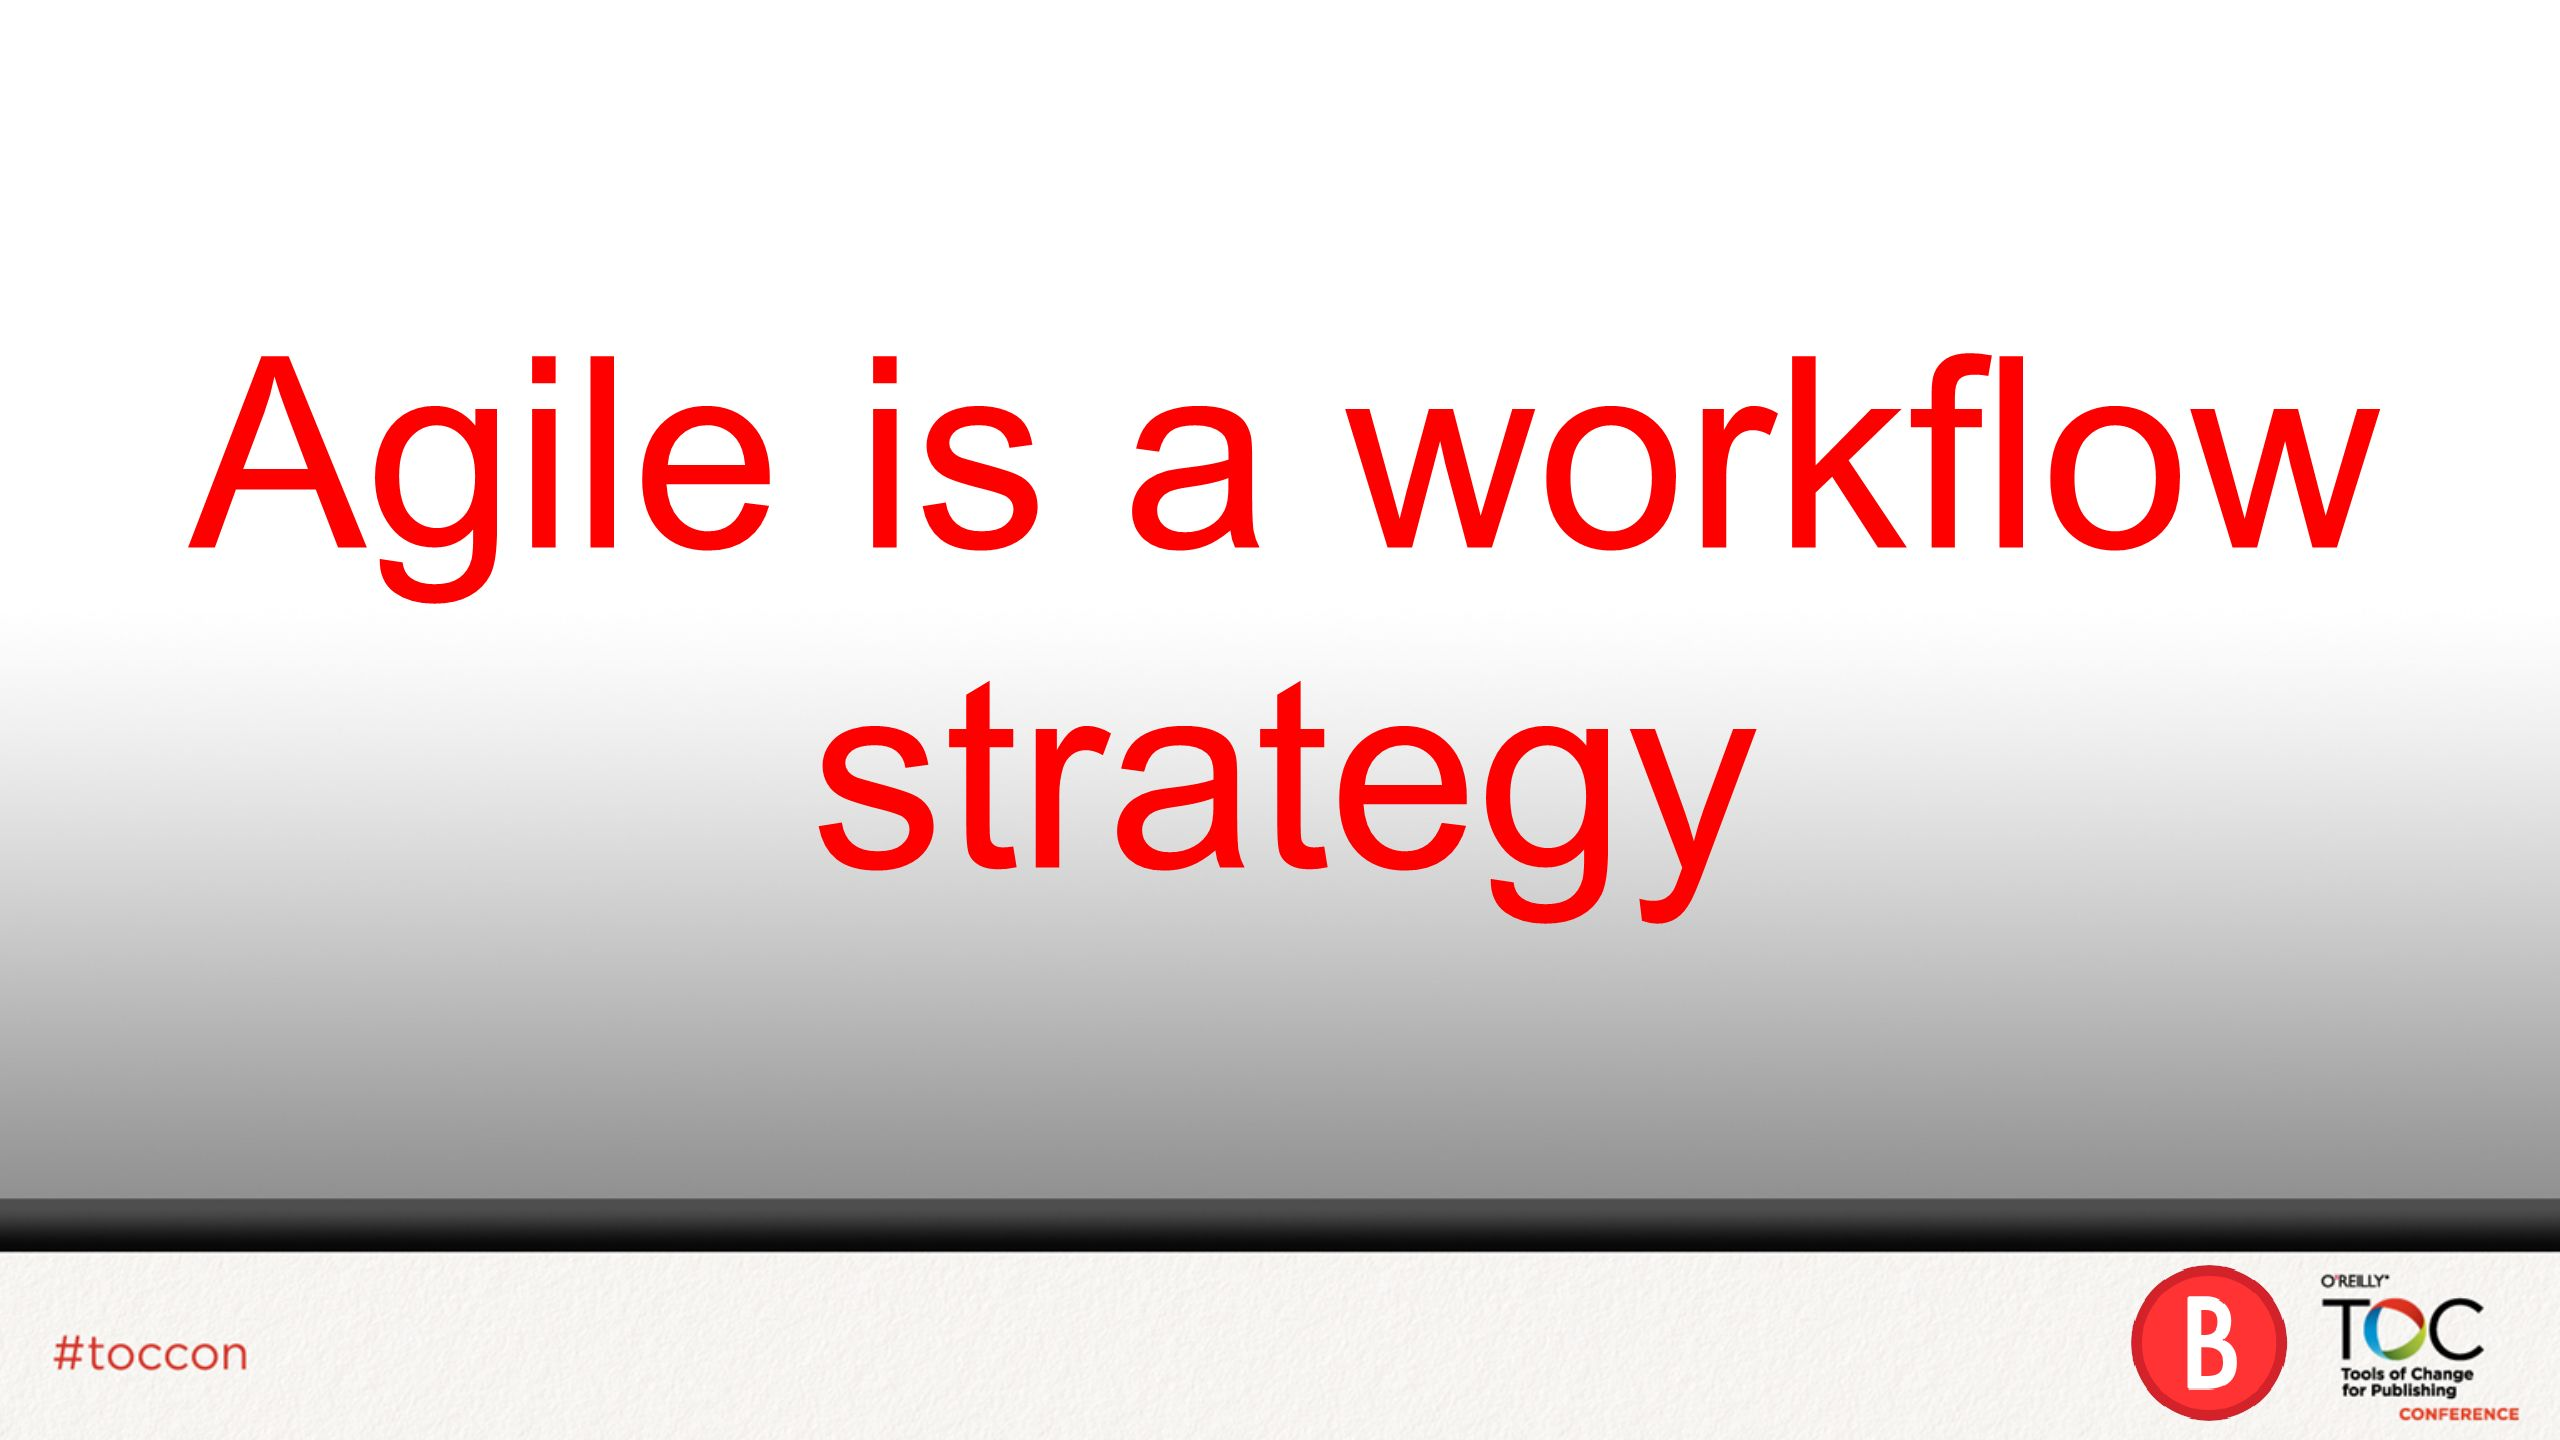 Agile is a workflow strategy